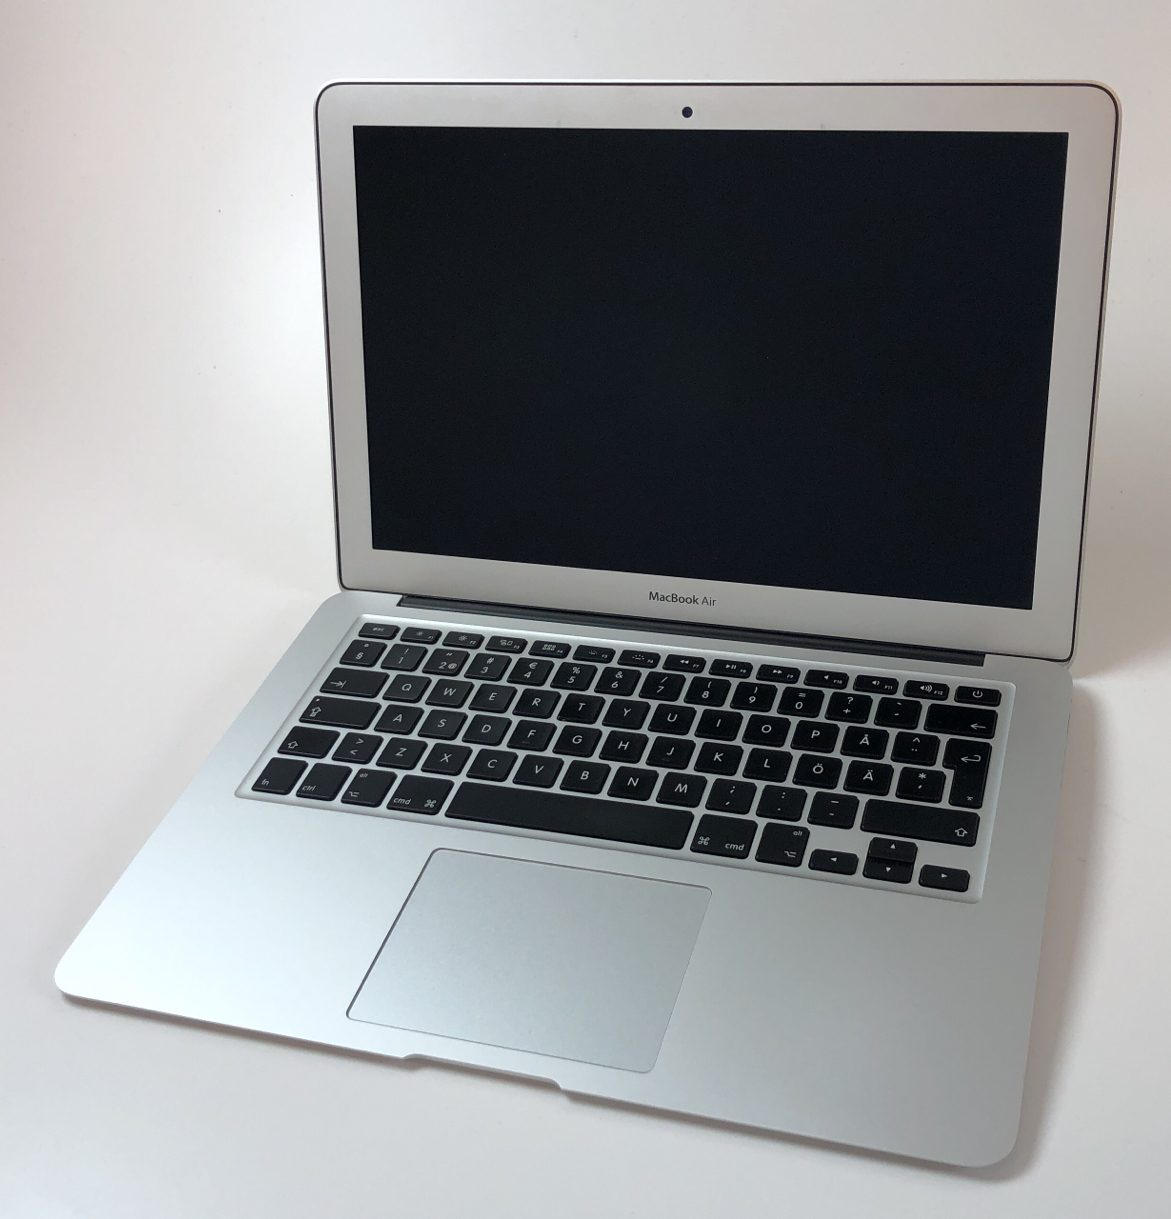 "MacBook Air 13"" Mid 2017 (Intel Core i5 1.8 GHz 8 GB RAM 128 GB SSD), Intel Core i5 1.8 GHz, 8 GB RAM, 128 GB SSD, bild 1"